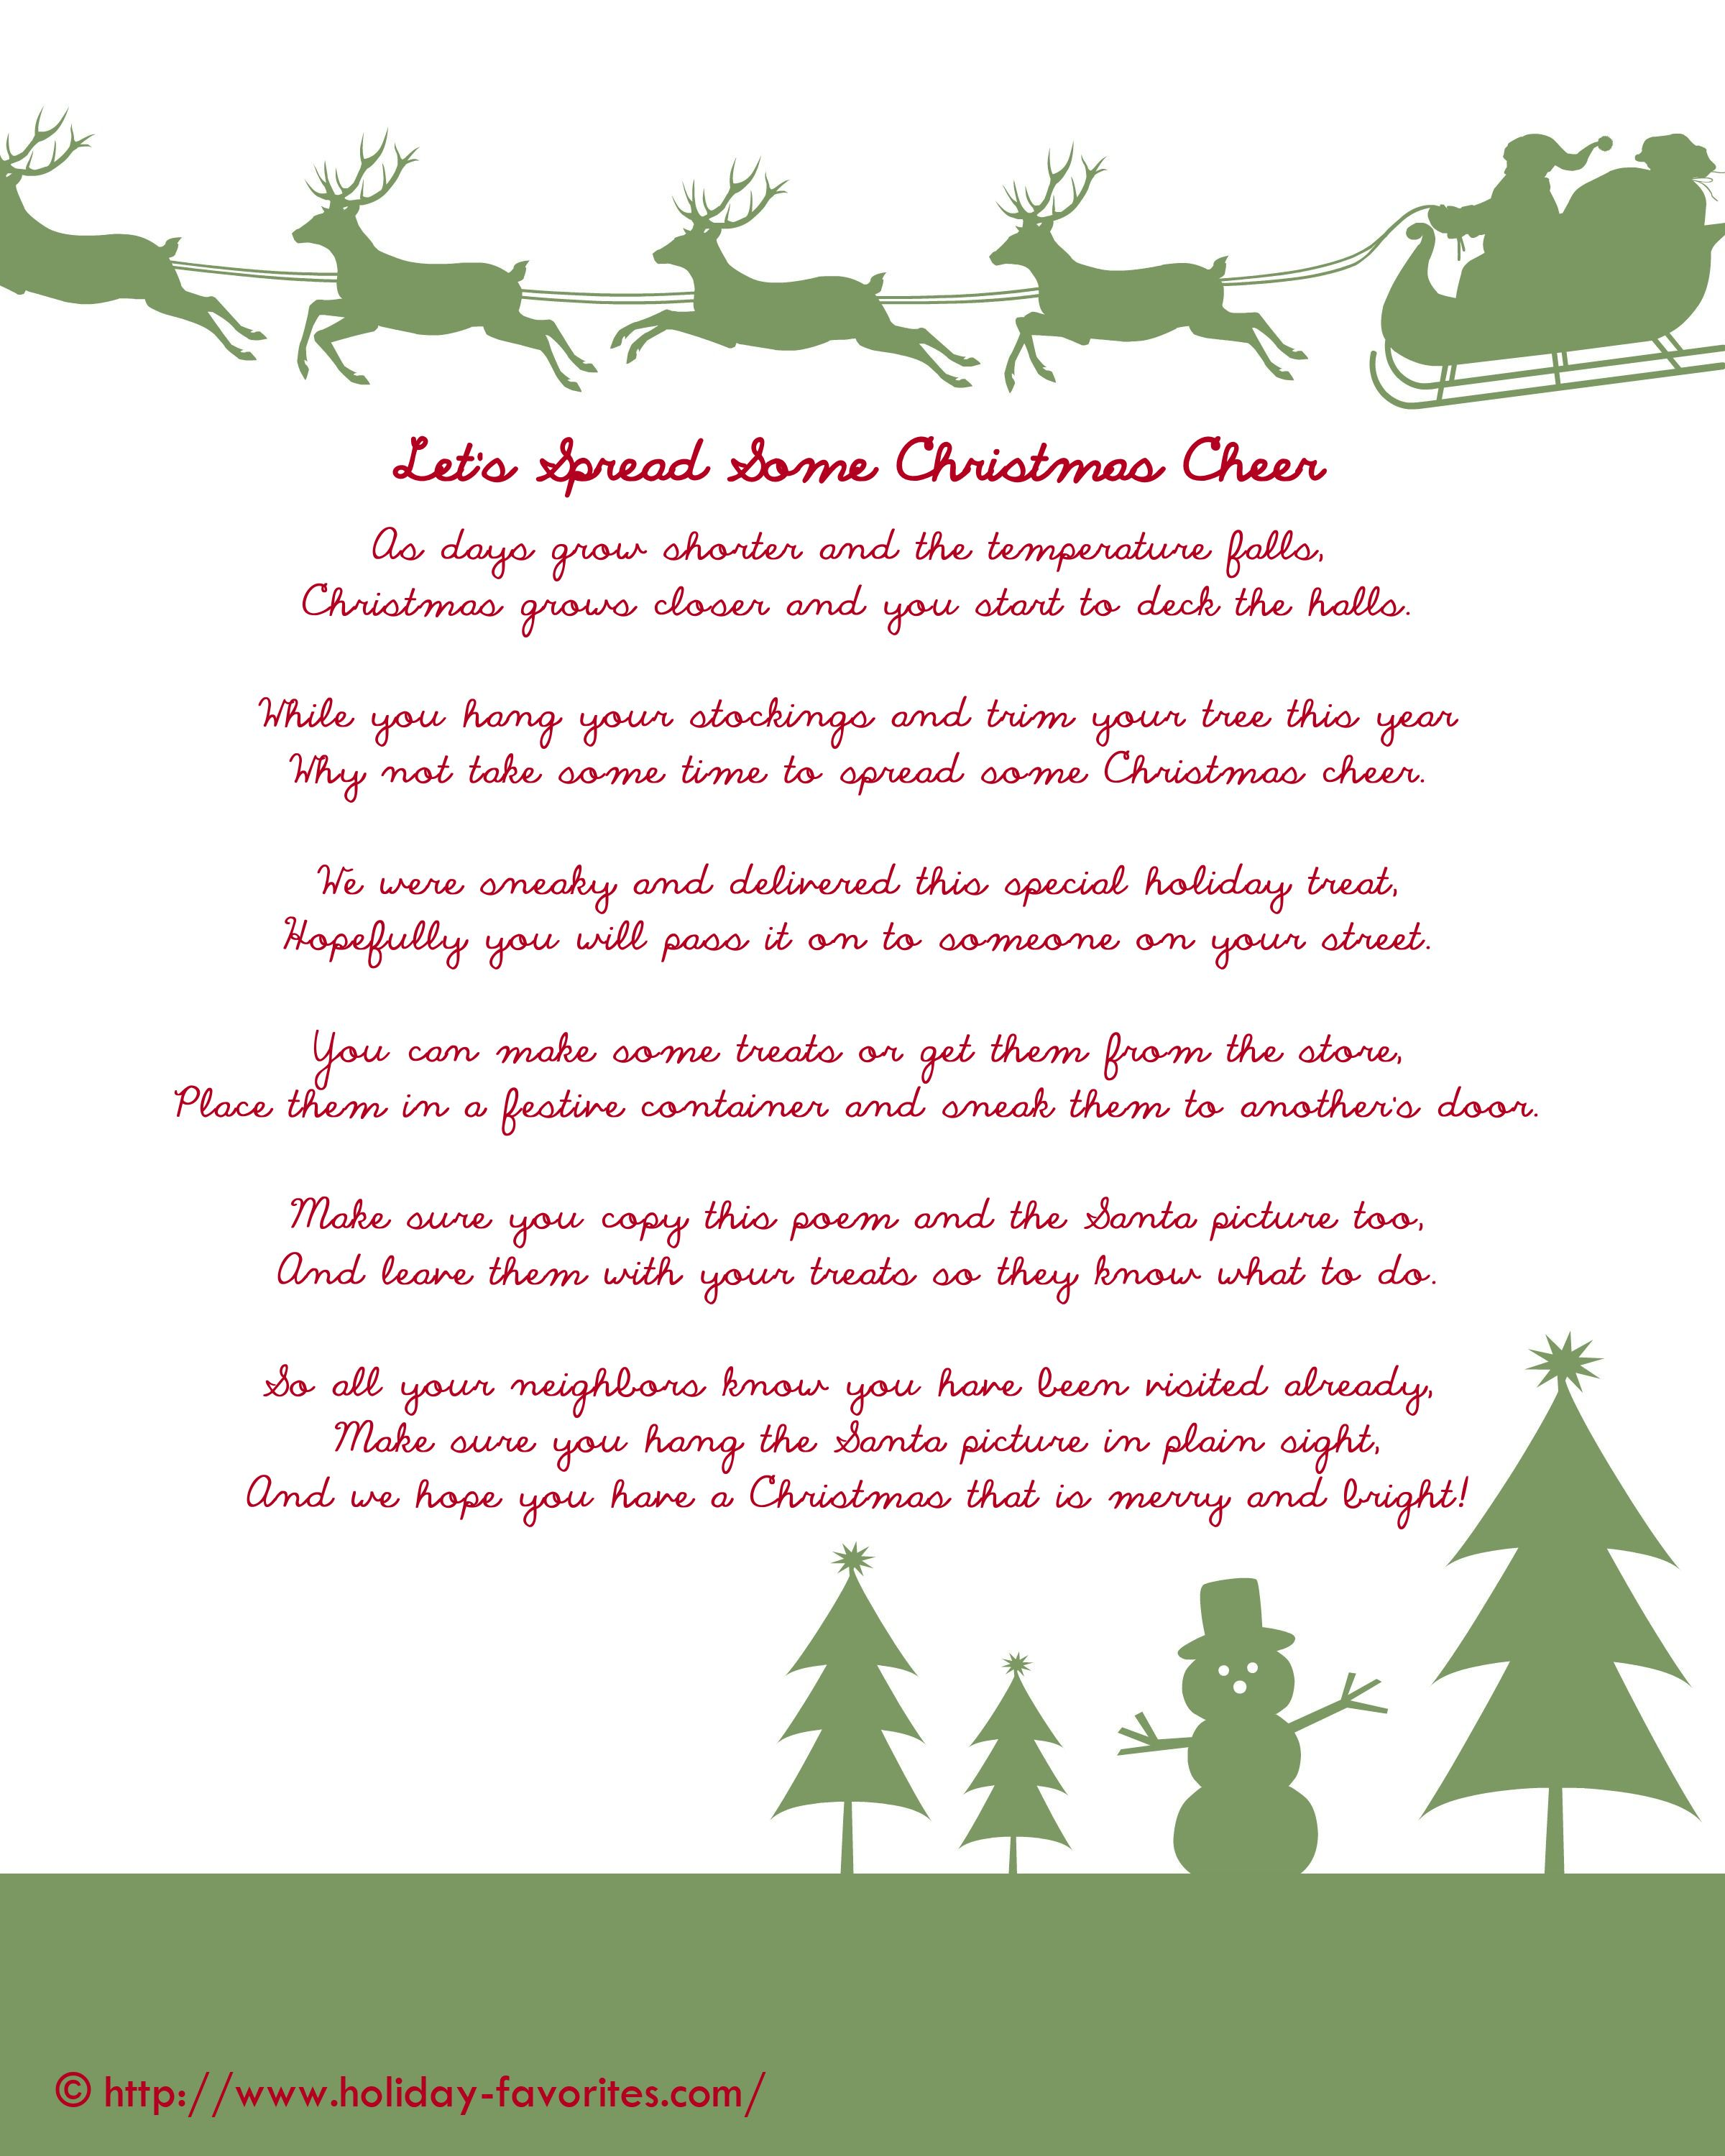 Neighbor Pass-It-On Christmas Gift Poem